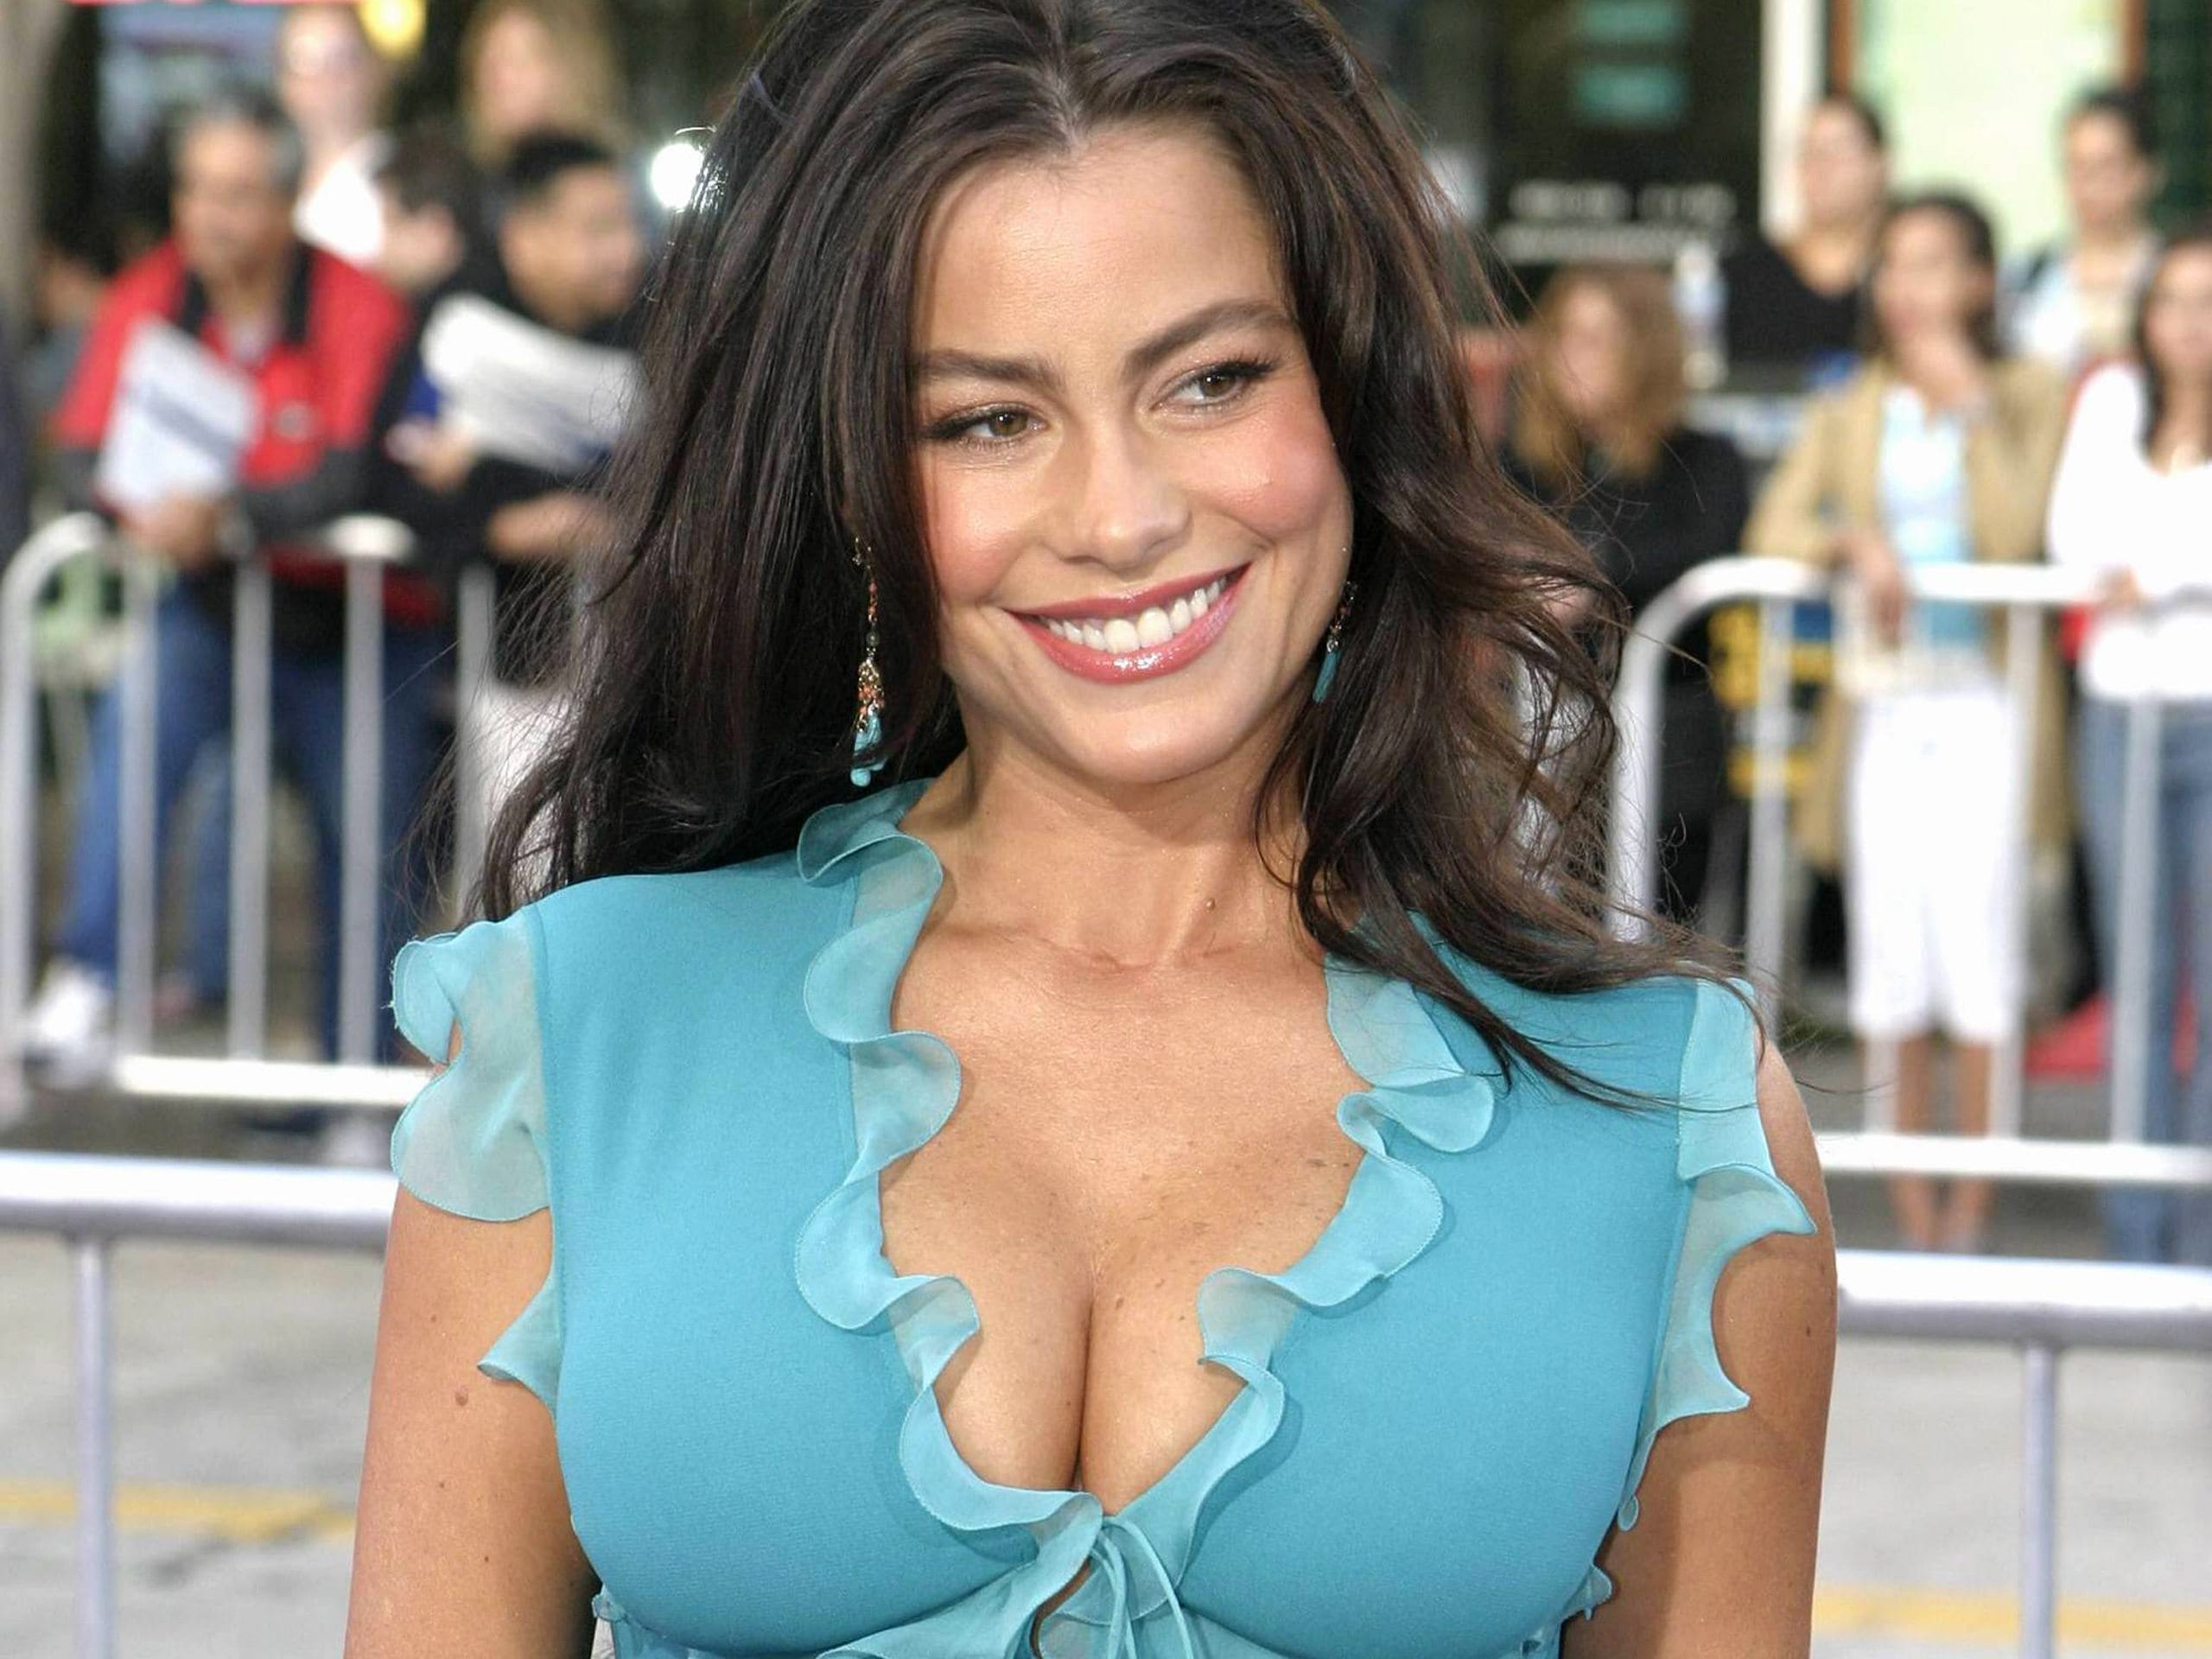 Sofia Vergara Backgrounds